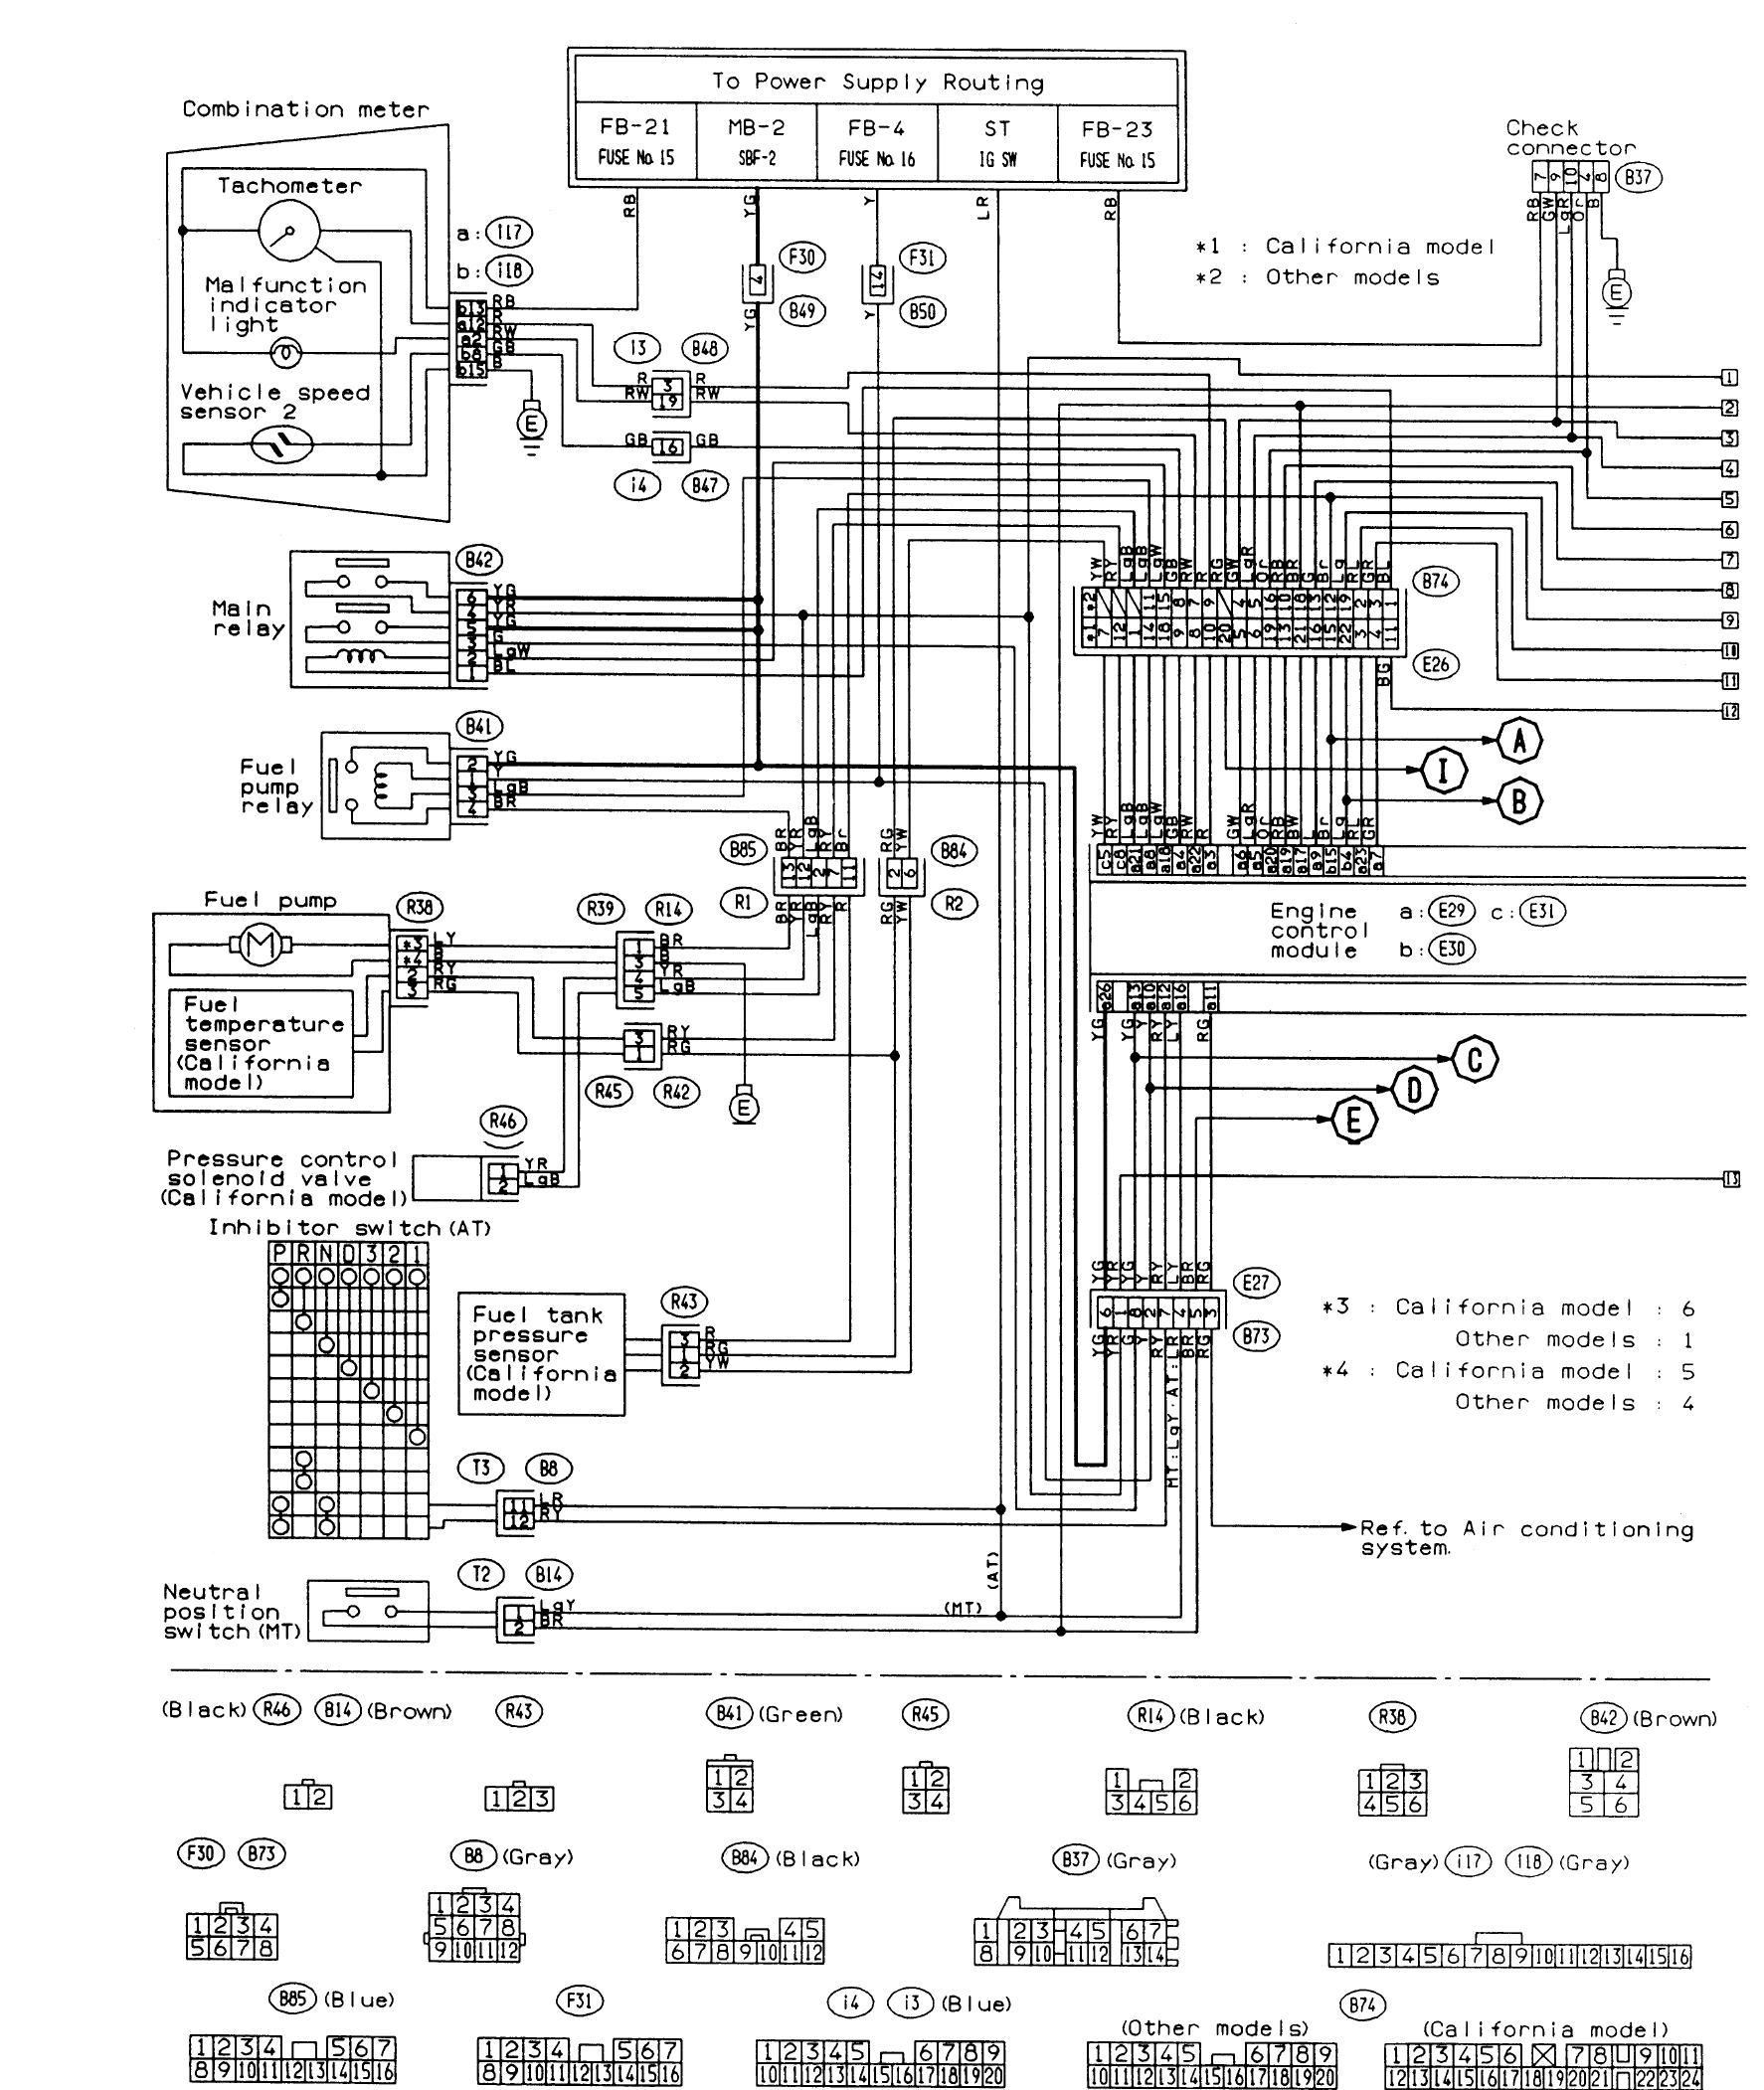 subaru ecu wiring diagram FUSlrCX subaru engine wiring diagram subaru wiring diagrams instruction 2000 subaru impreza wiring diagram at soozxer.org